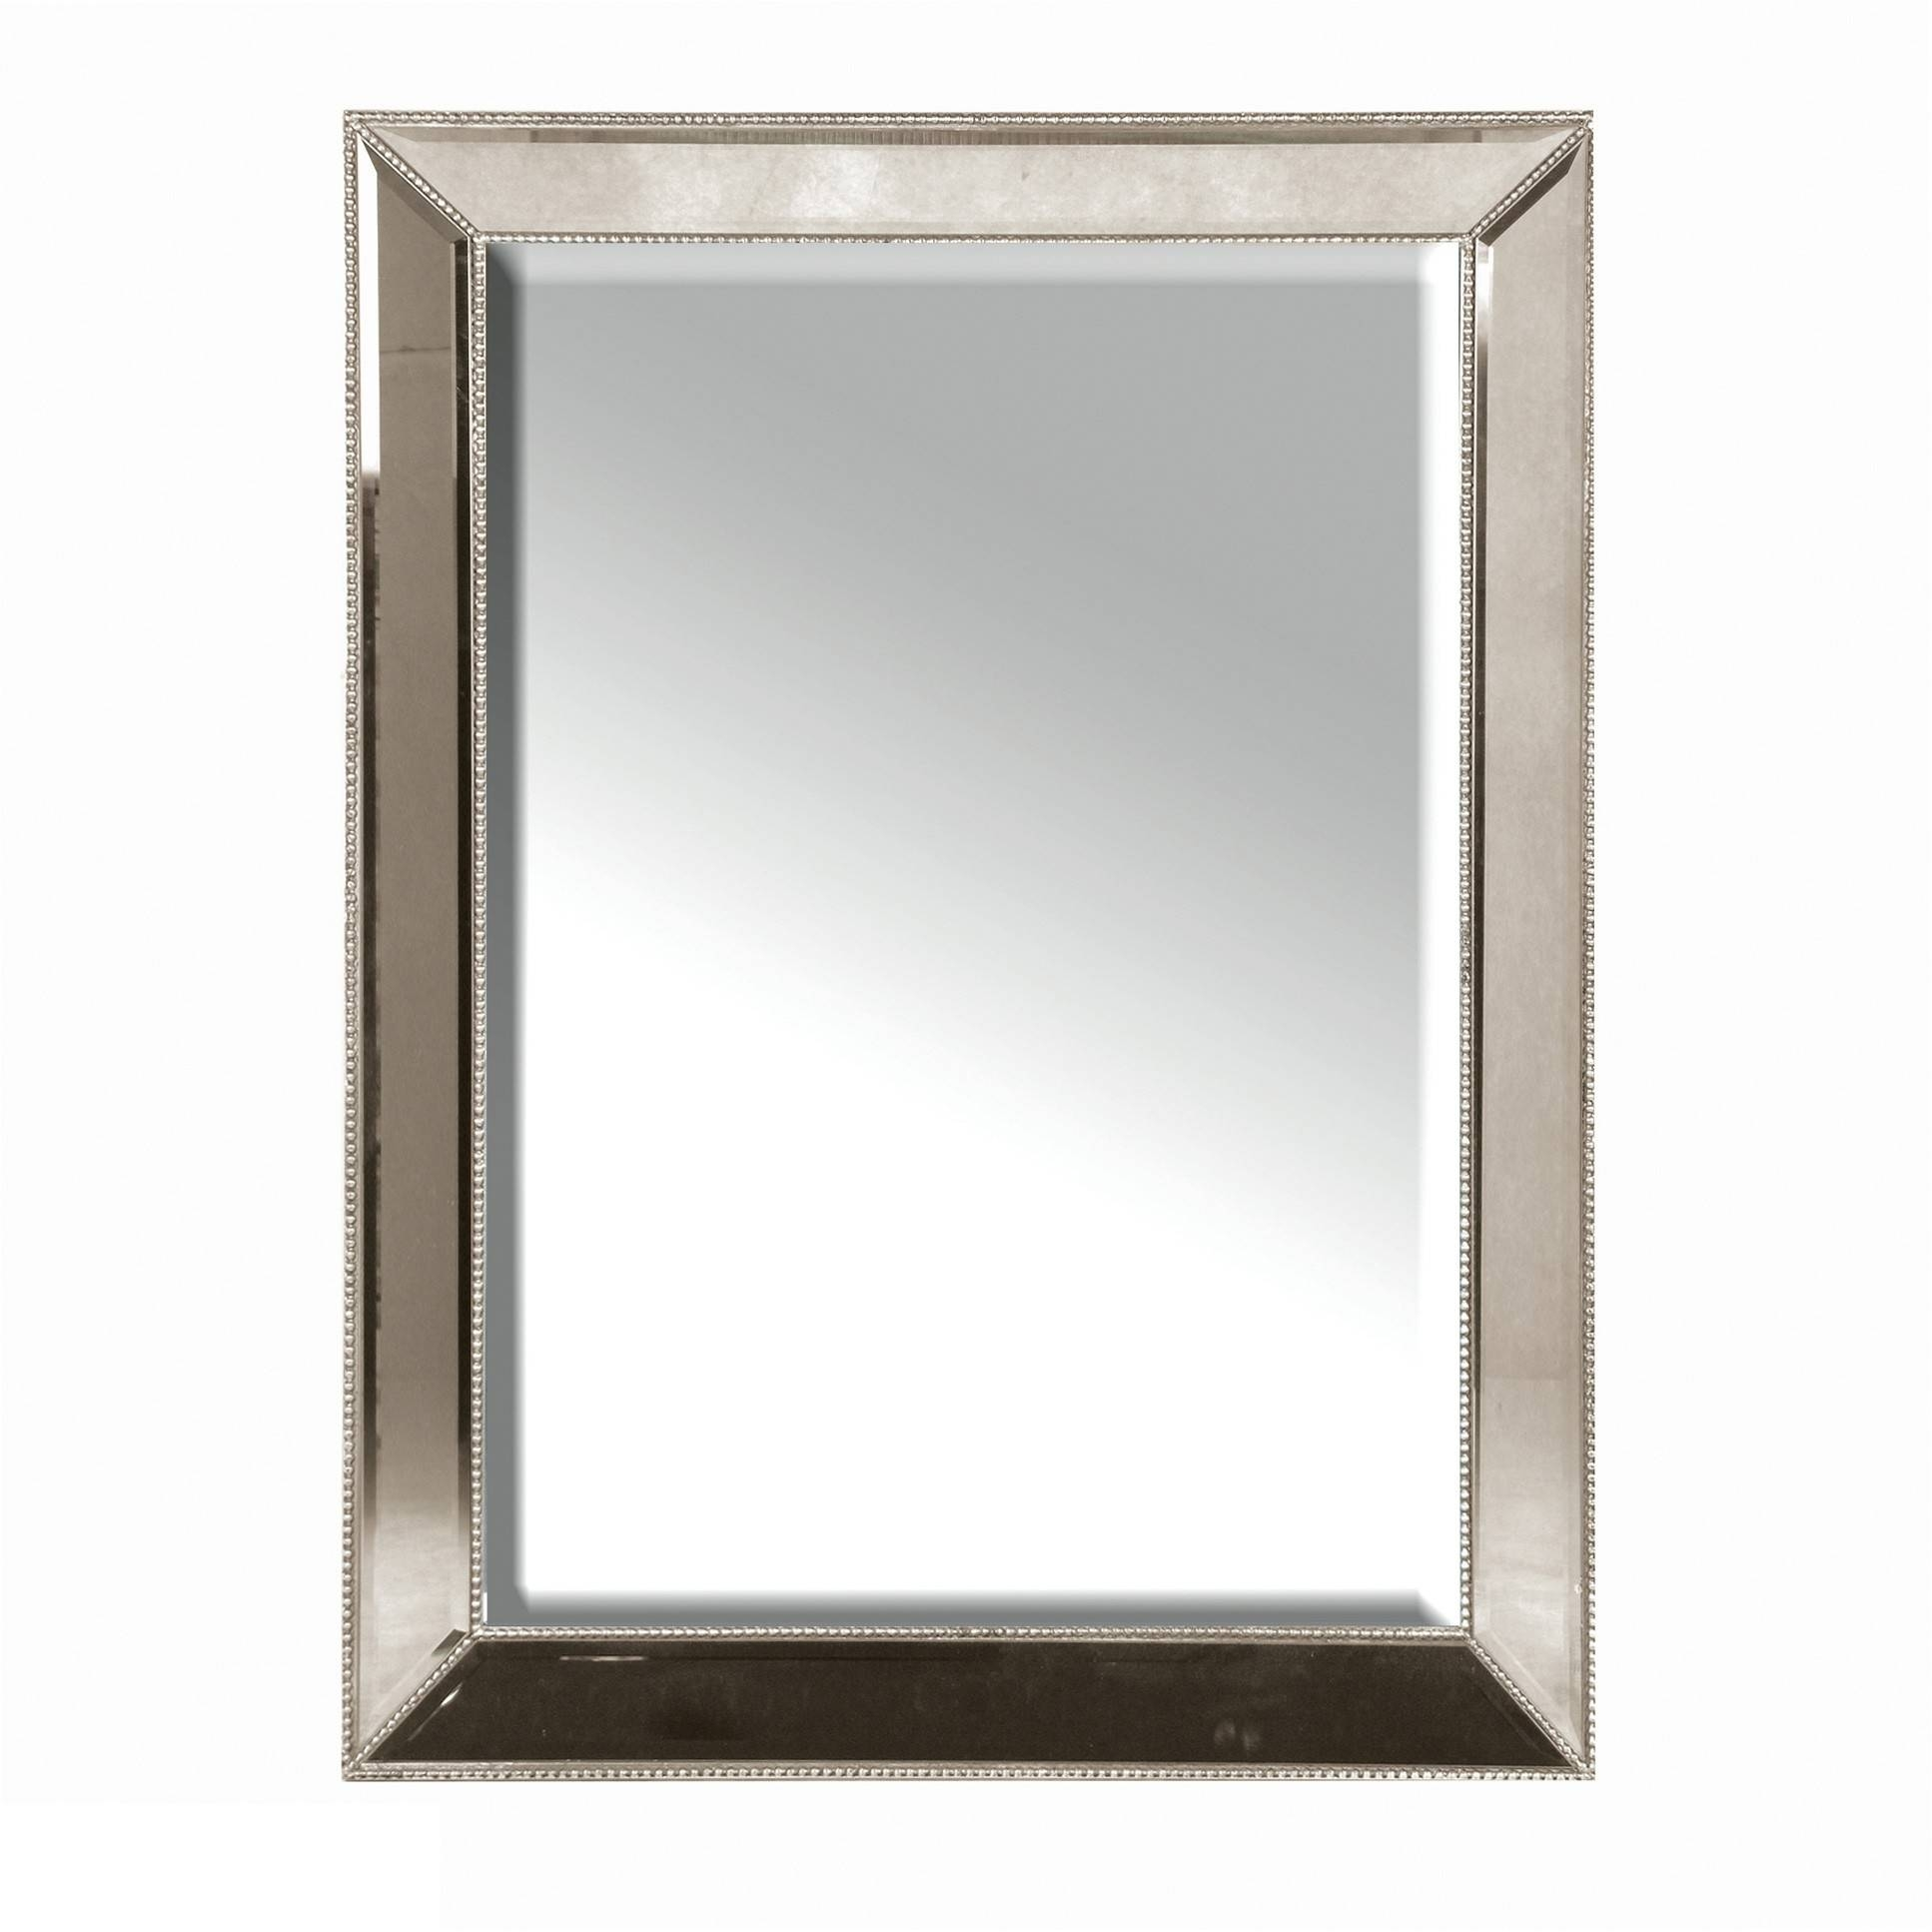 Interior: Vintage Venetian Mirror For Classic Interior Decor throughout Venetian Style Wall Mirrors (Image 8 of 25)